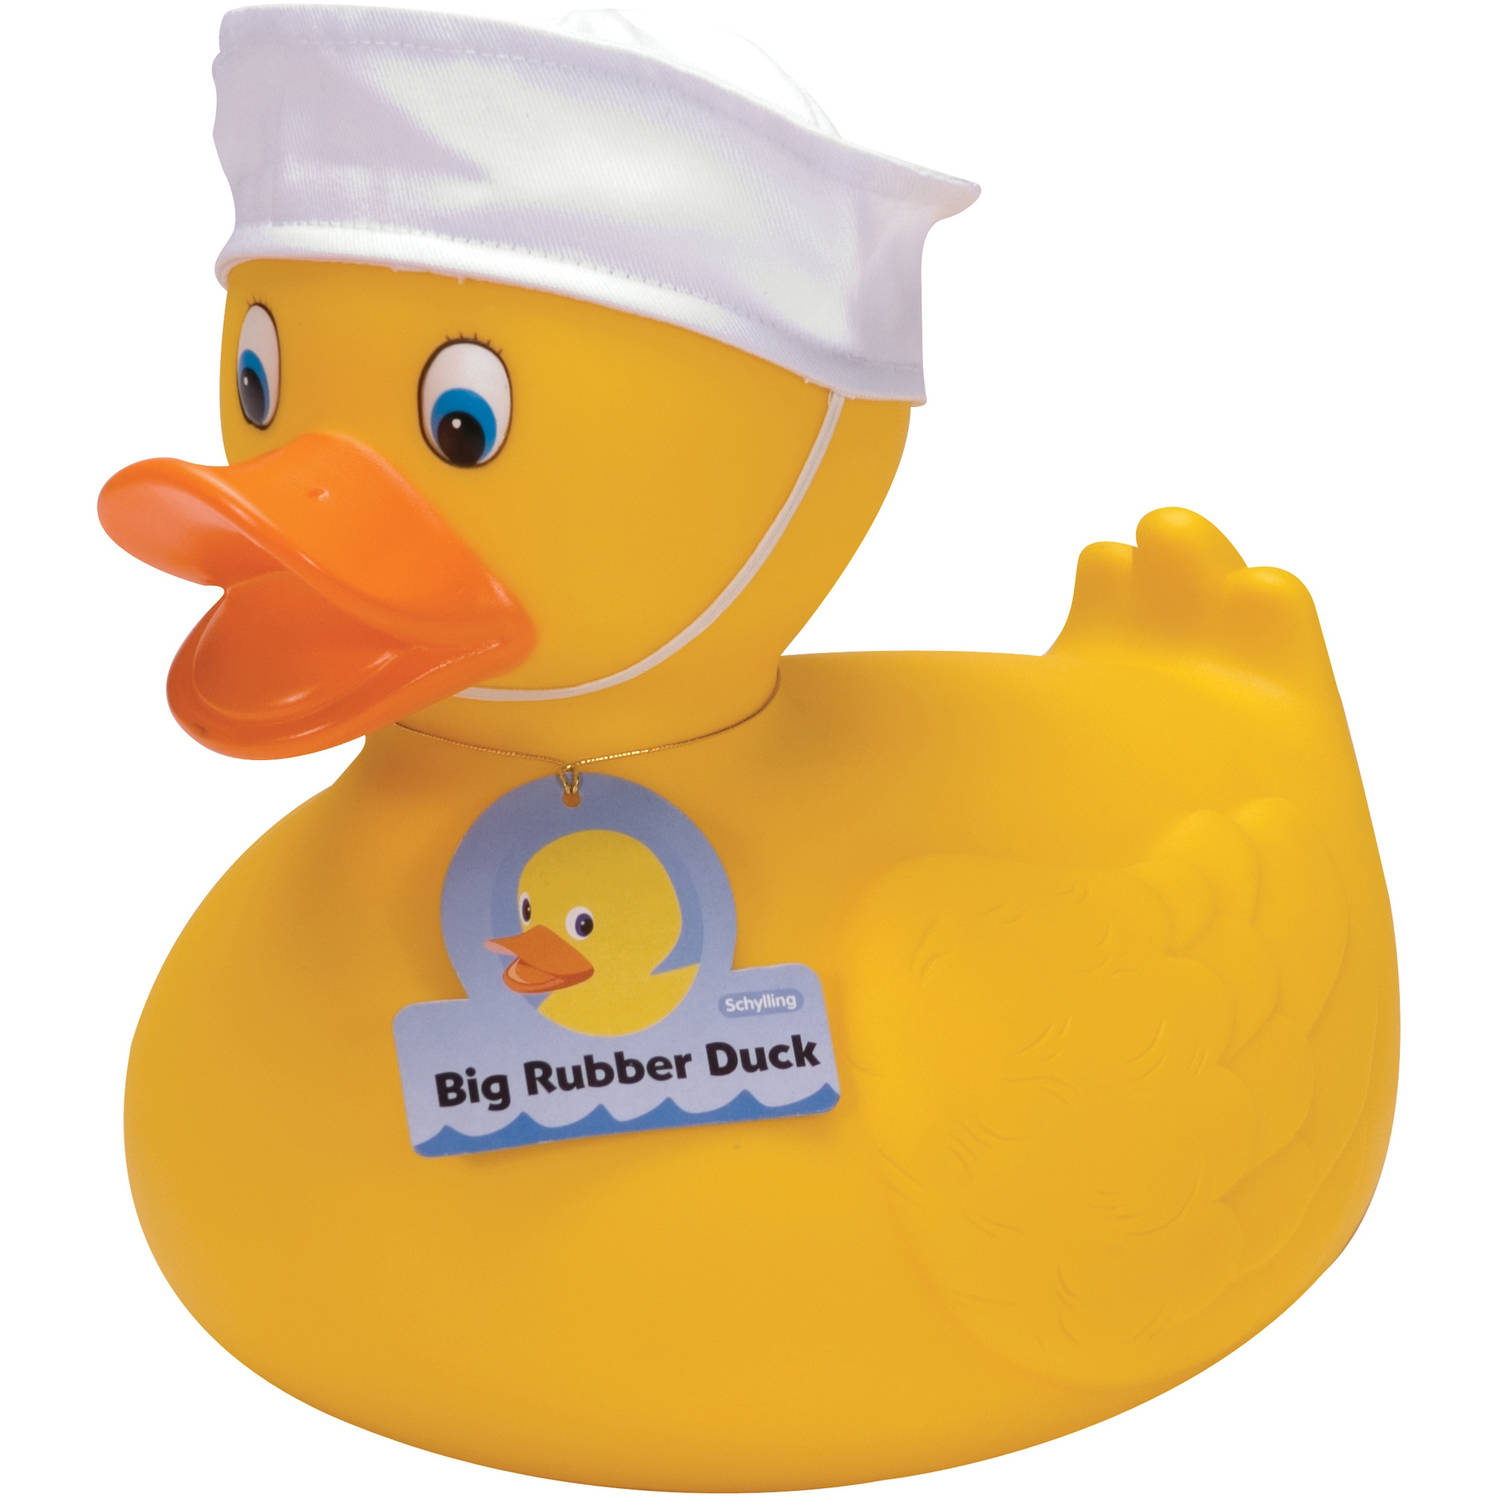 Schylling Large Rubber Duck, Styles May Vary by Schylling